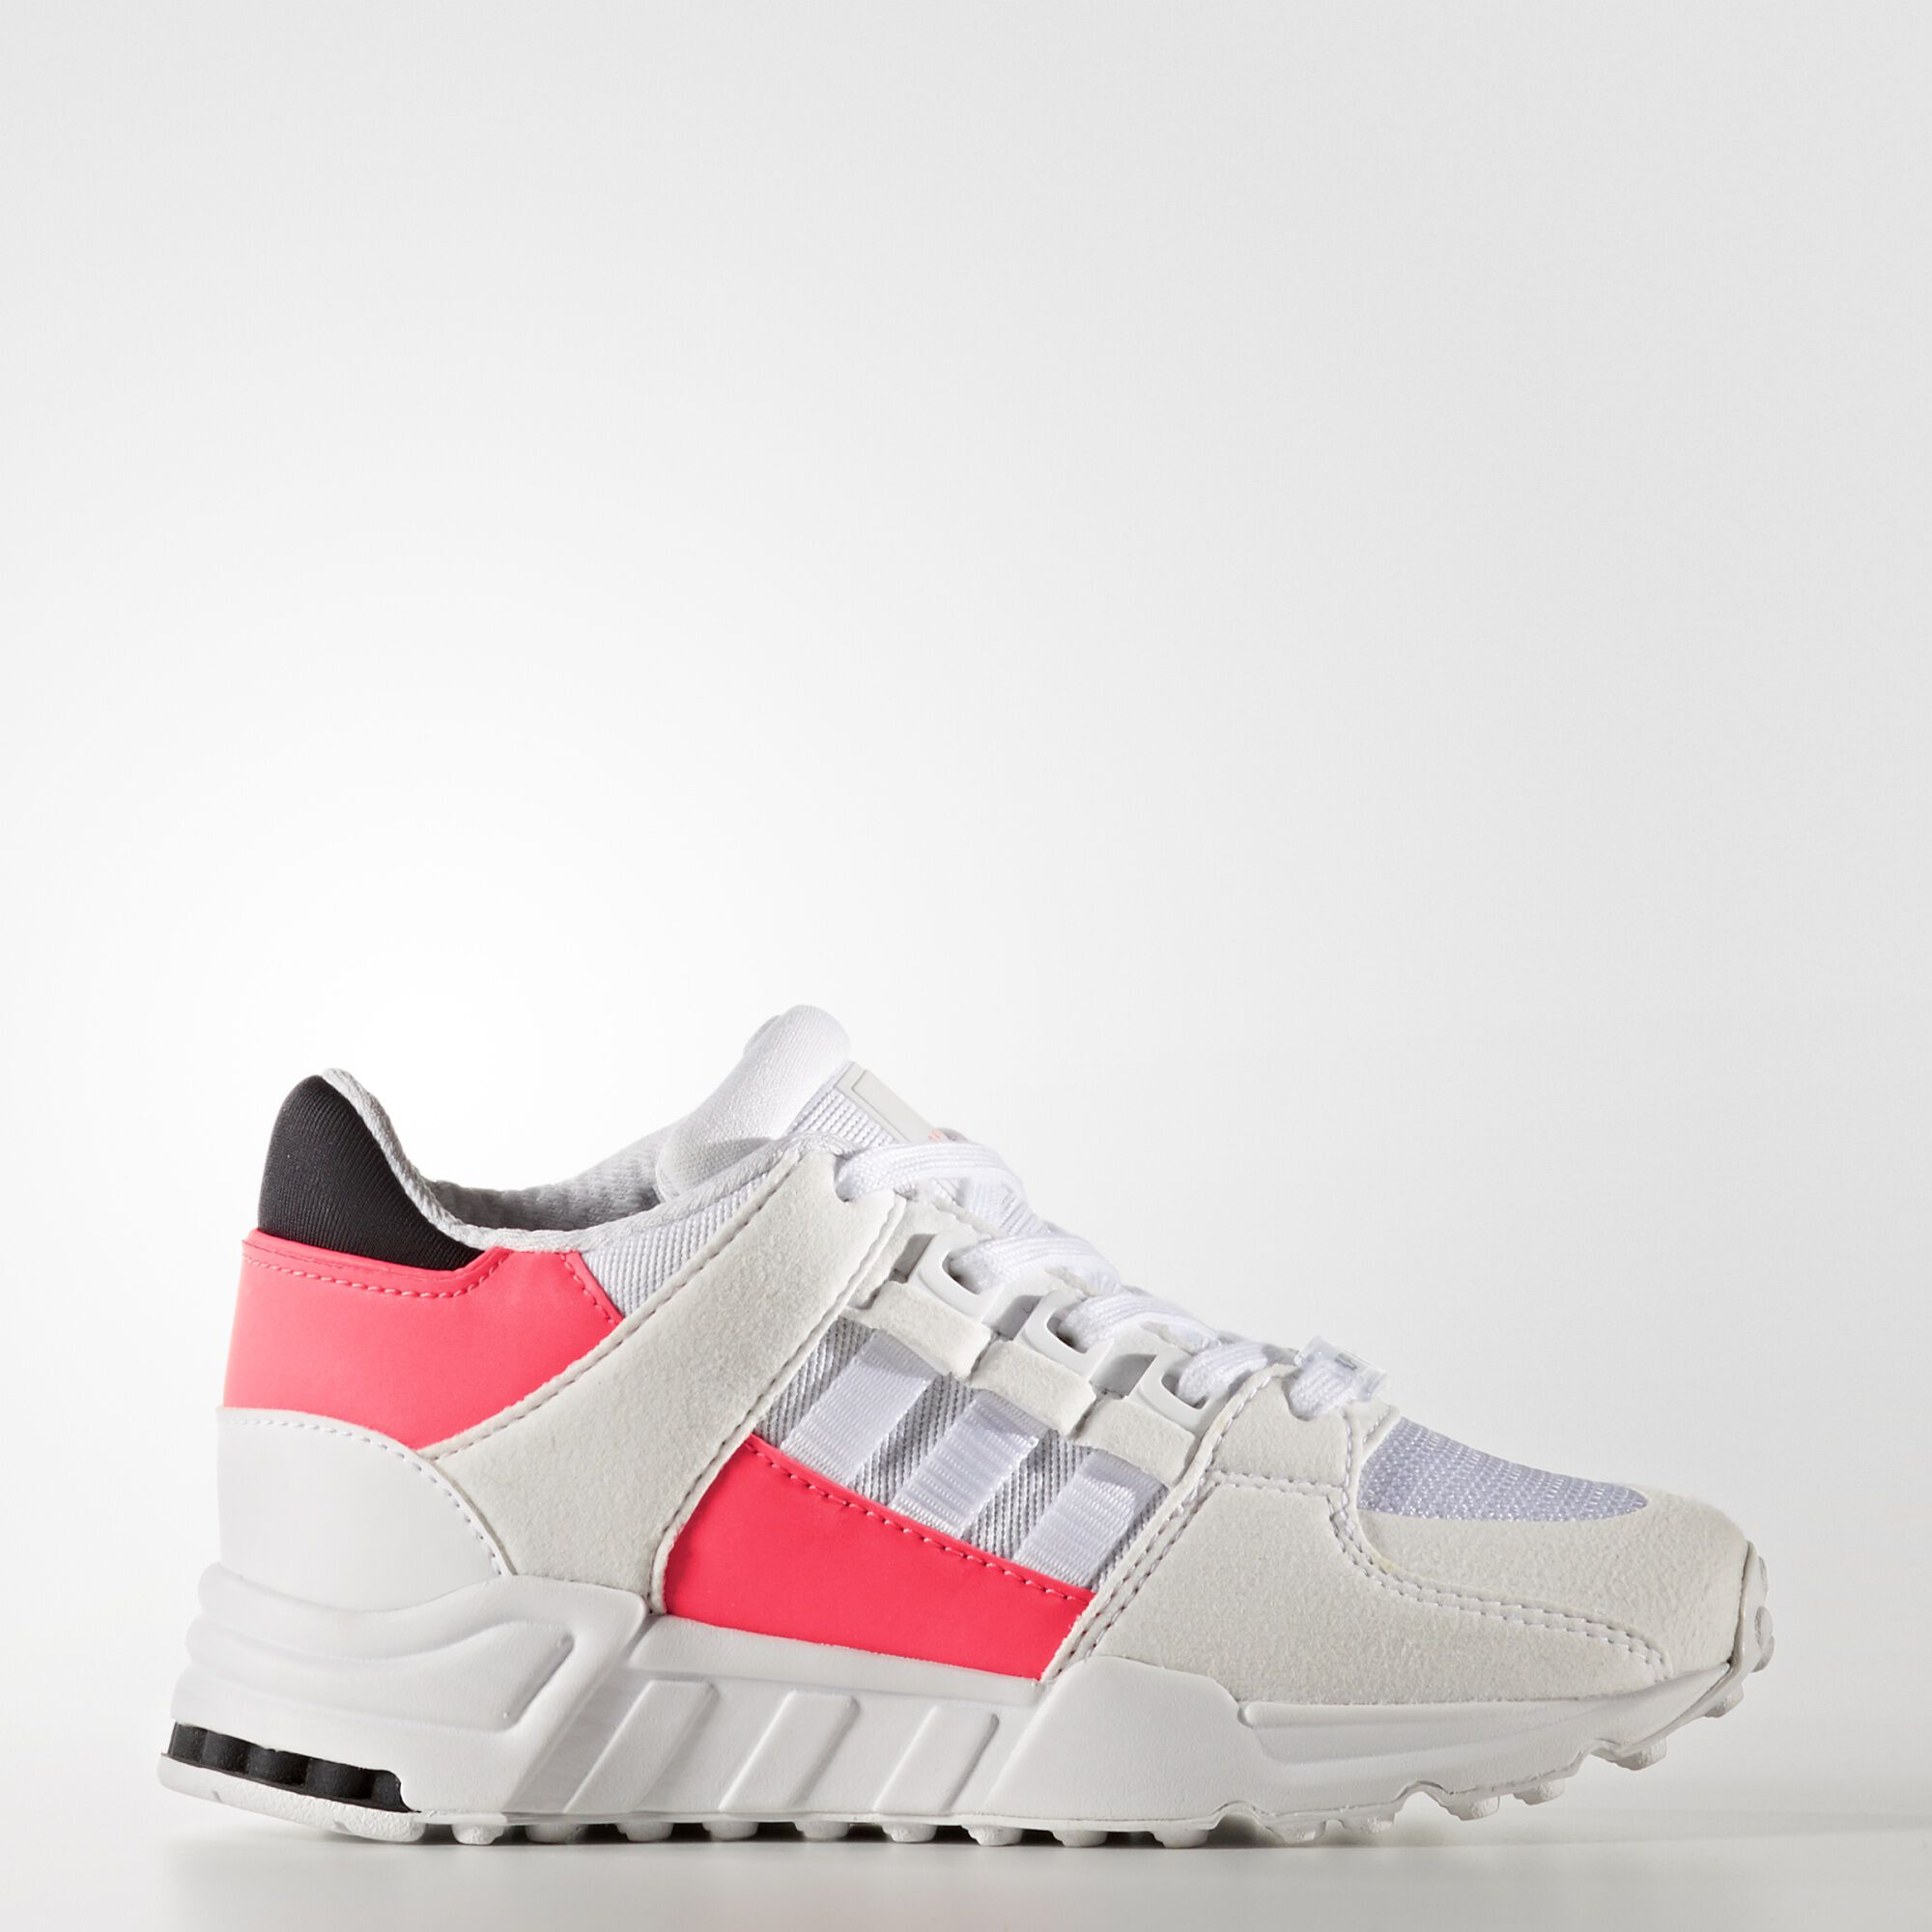 This adidas EQT Support '93